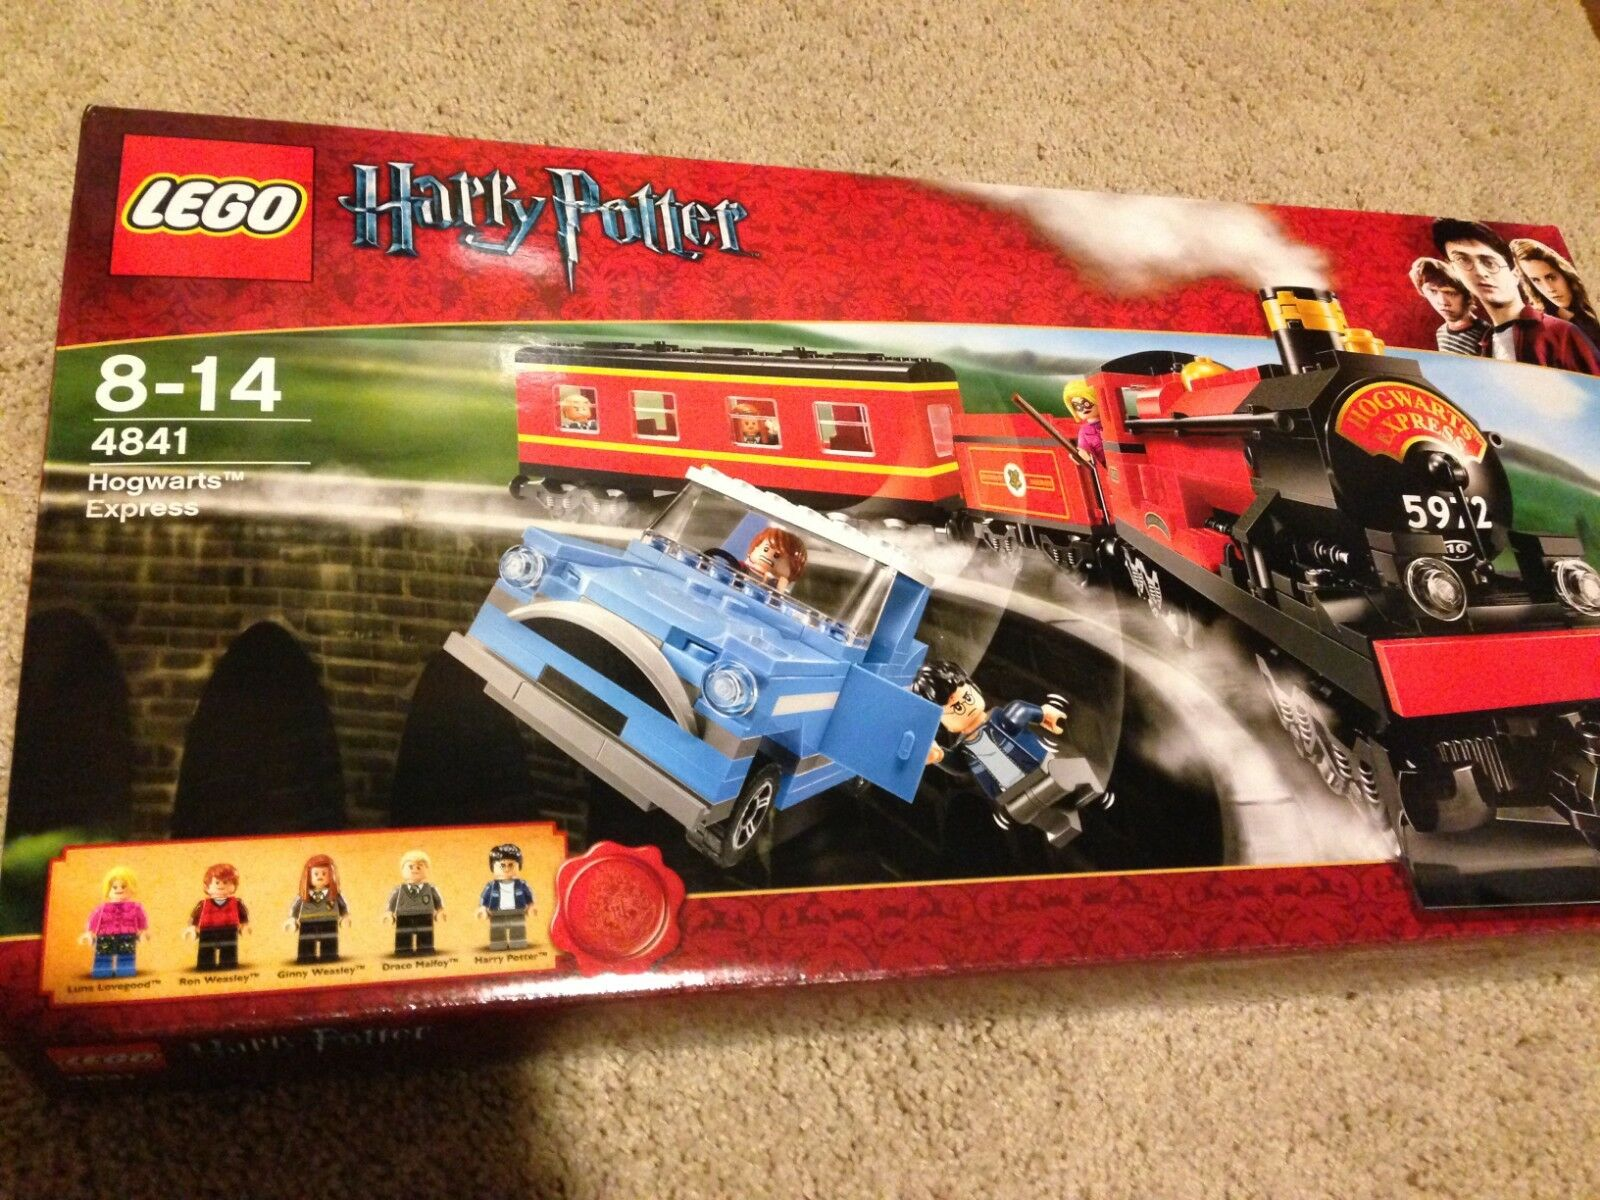 LEGO Harry Potter Hogwarts Express (4841) Unopened, Factory-sealed